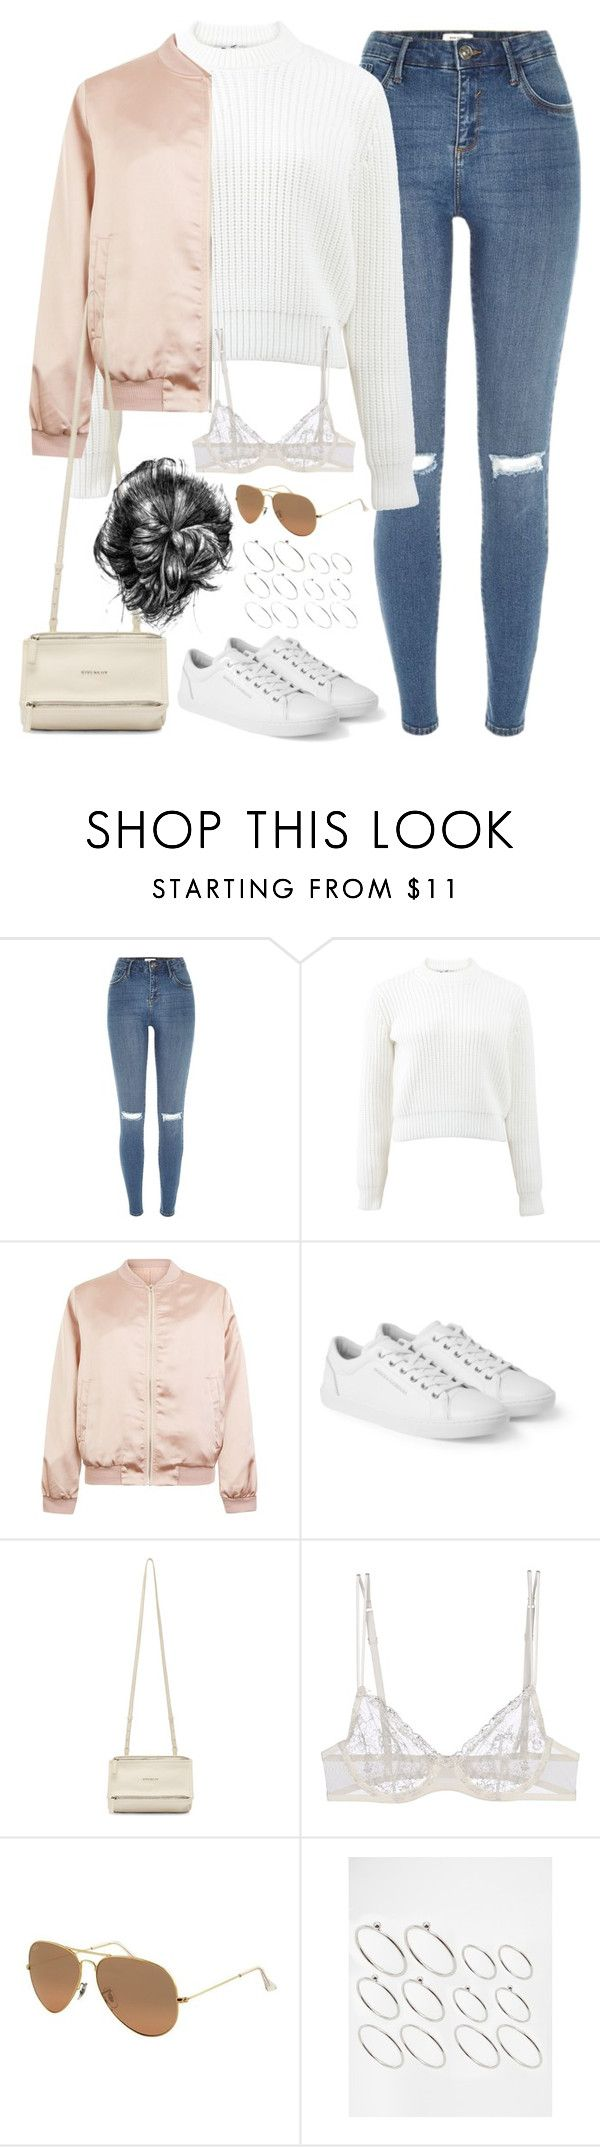 """""""Untitled#4522"""" by fashionnfacts ❤ liked on Polyvore featuring River Island, T By Alexander Wang, Cameo Rose, Dolce&Gabbana, Givenchy, La Perla, Ray-Ban and ASOS"""